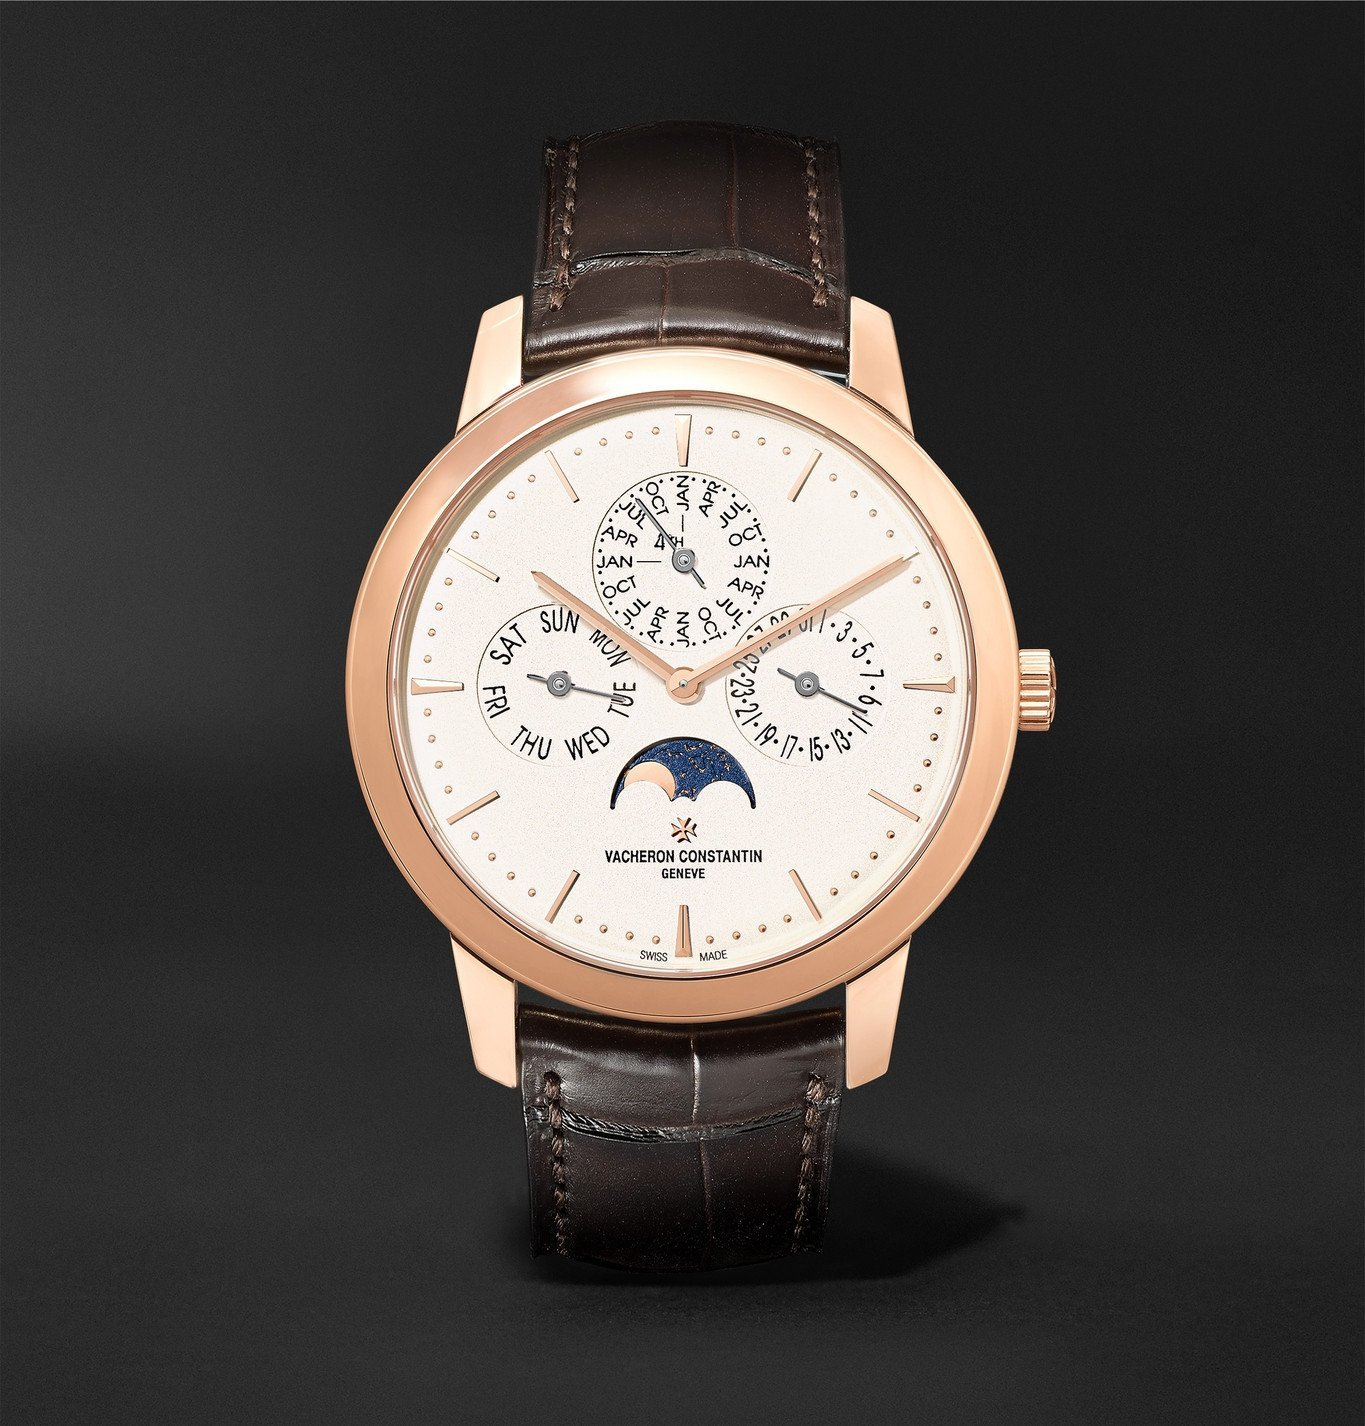 Photo: Vacheron Constantin - Traditionnelle Perpetual Calendar Automatic 41mm 18-Karat Pink Gold and Alligator Watch, Ref. No. 43175/000R-9687 - Unknown